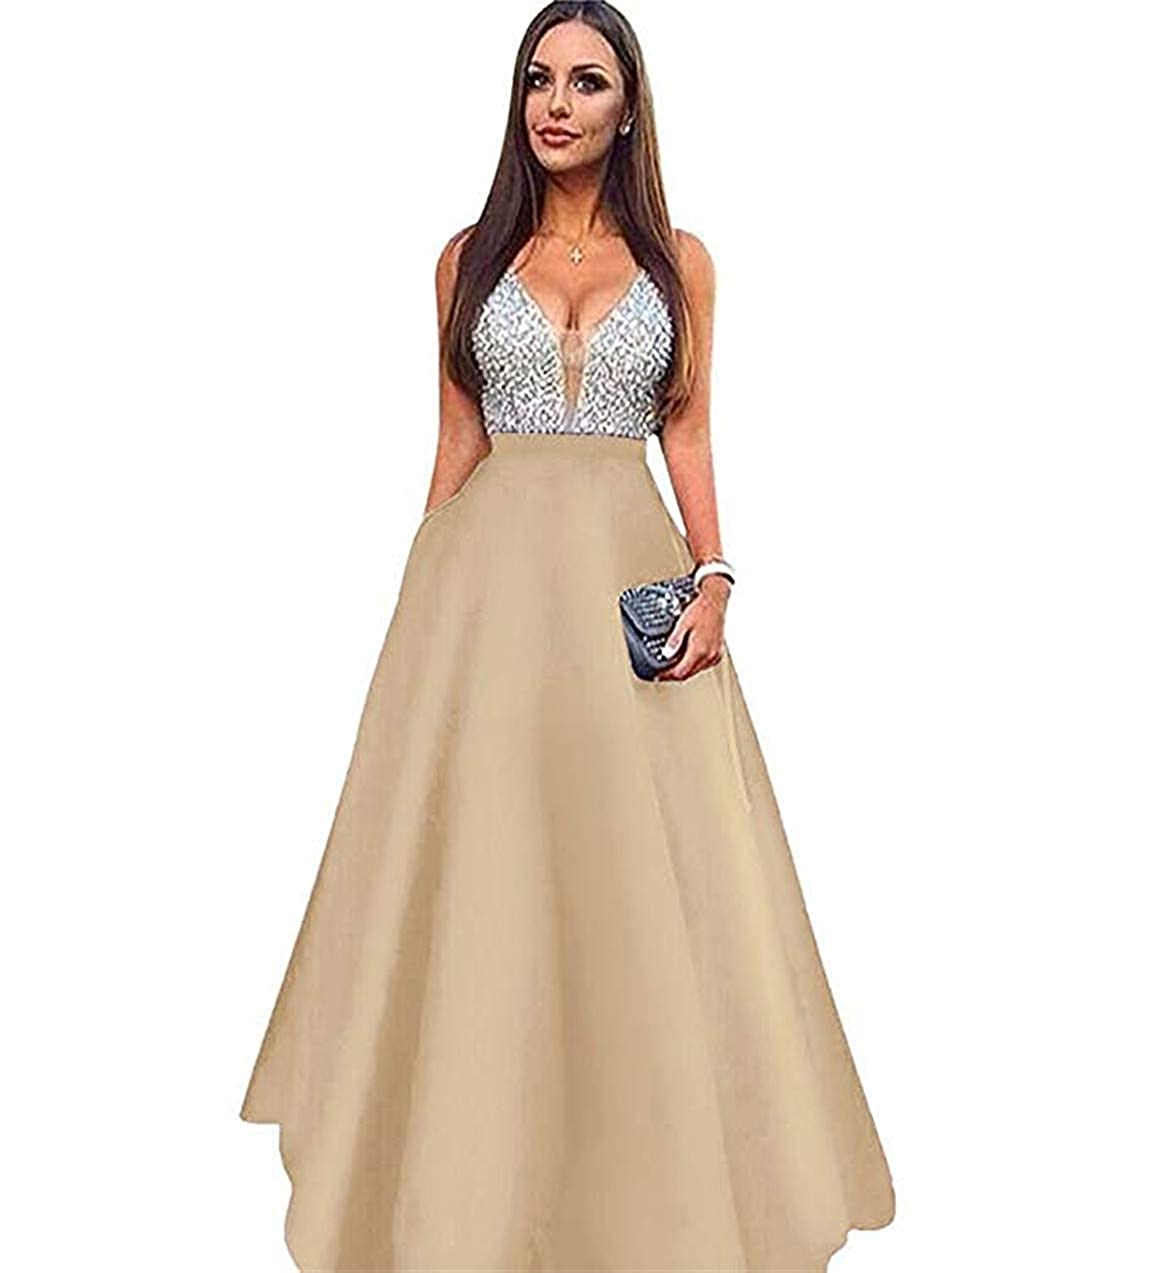 Champagne Lnxianee Women's Beaded VNeck Prom Dresses Long Formal Evening Gowns